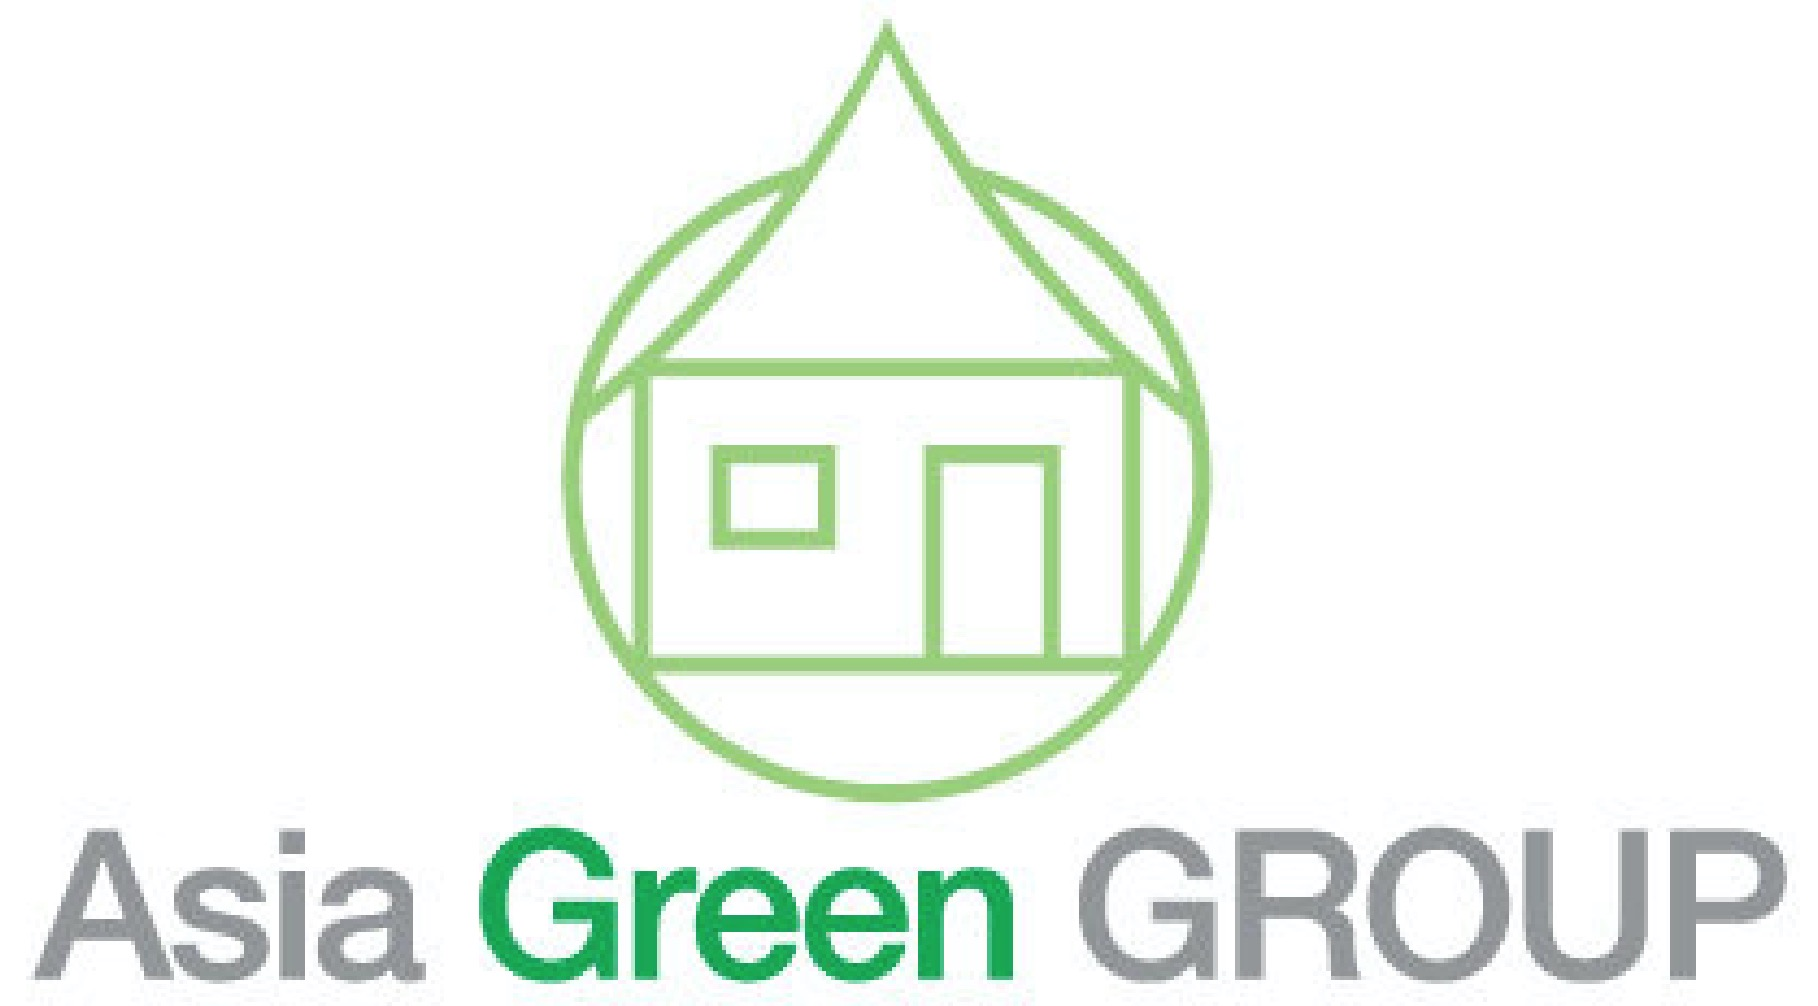 Developed By Asia Green Group